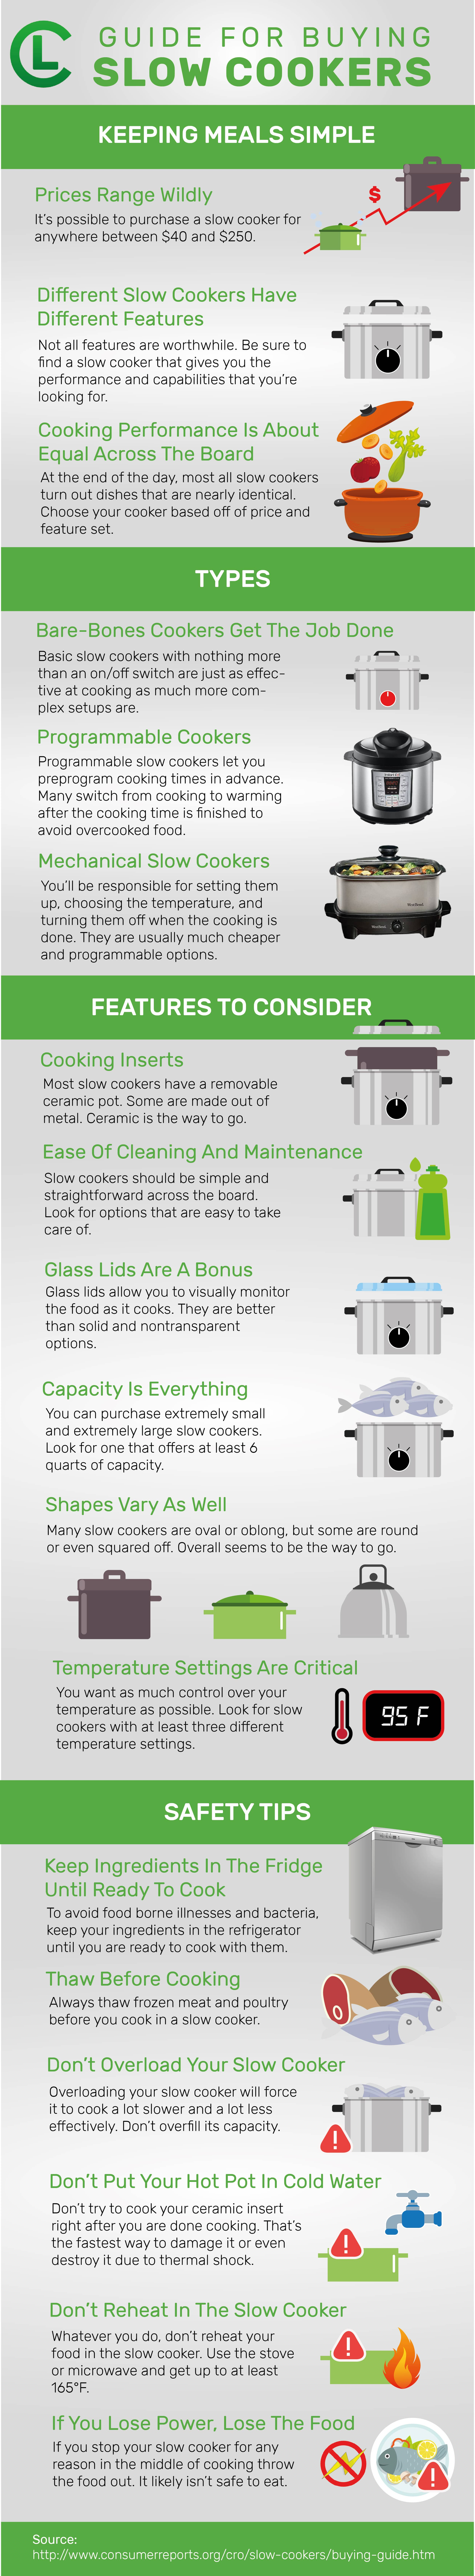 Guide For Buying Slow Cookers Infographic